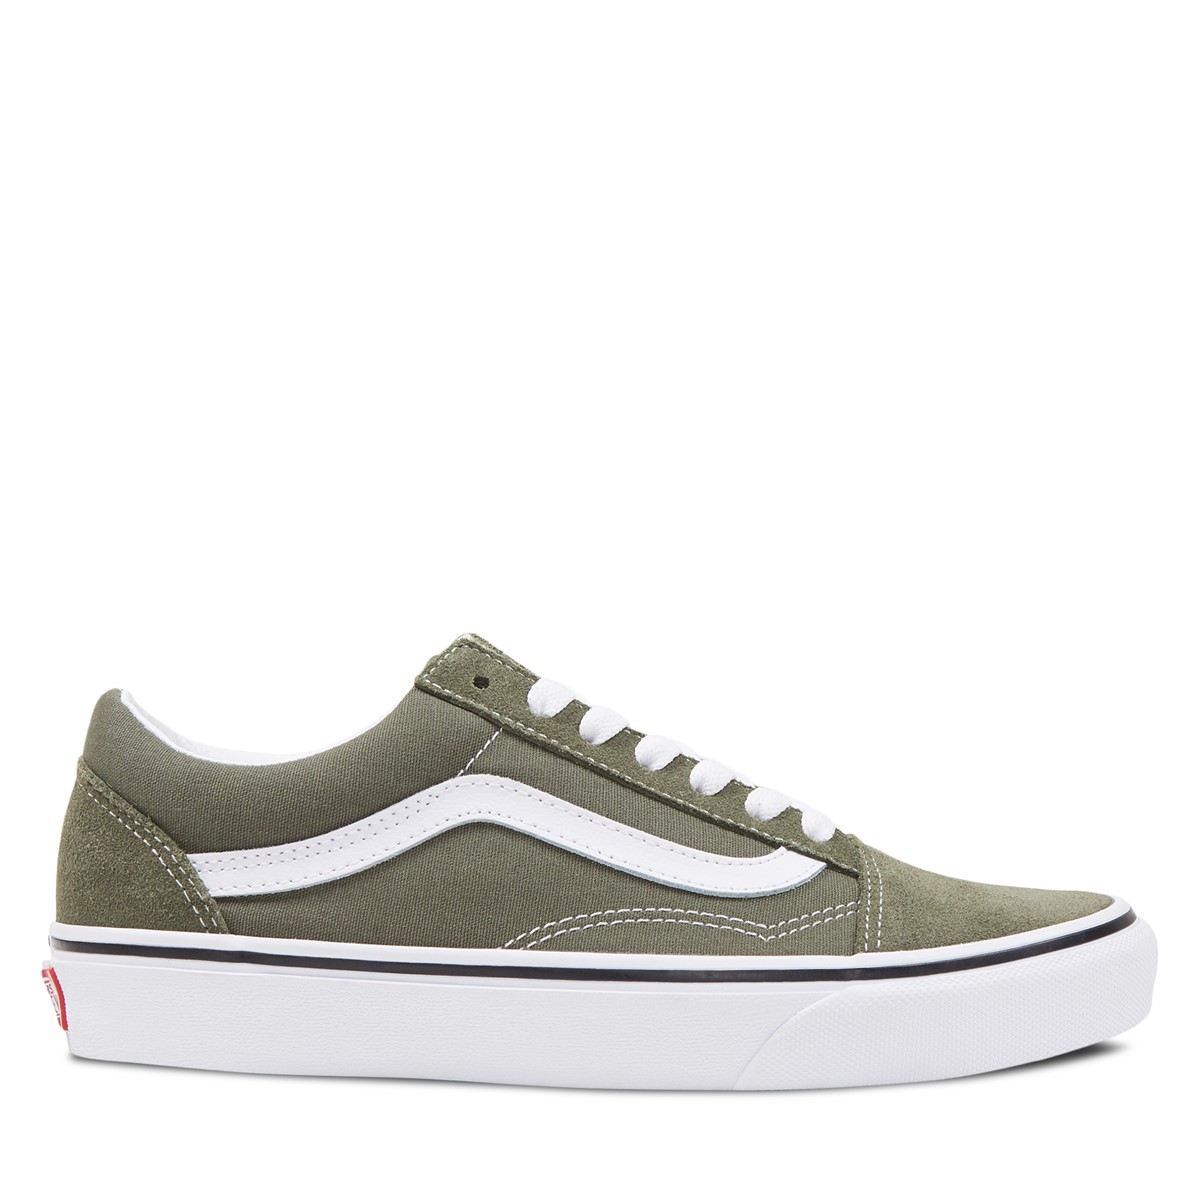 Women's Old Skool Sneakers in Forest green